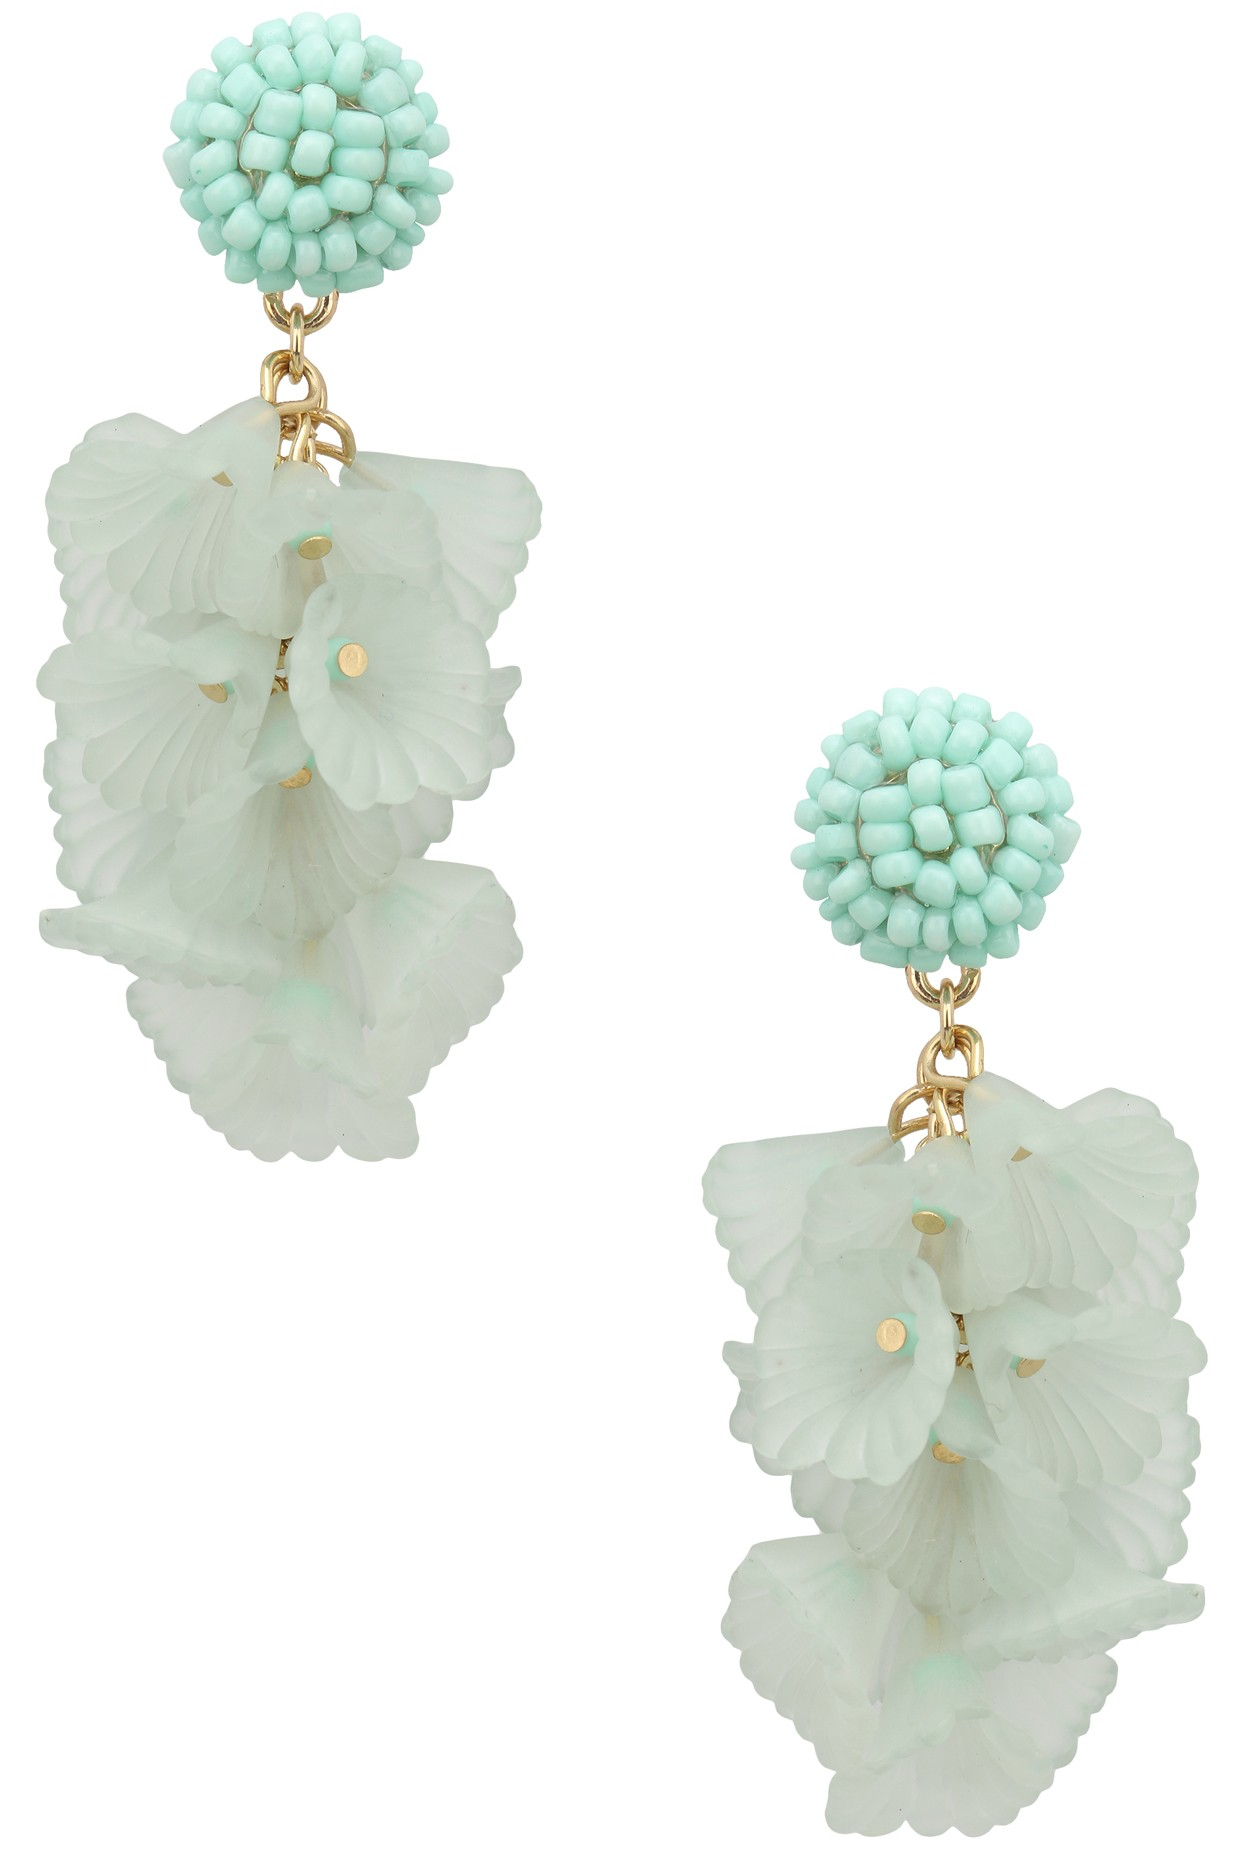 Stone and Fabric Earrings